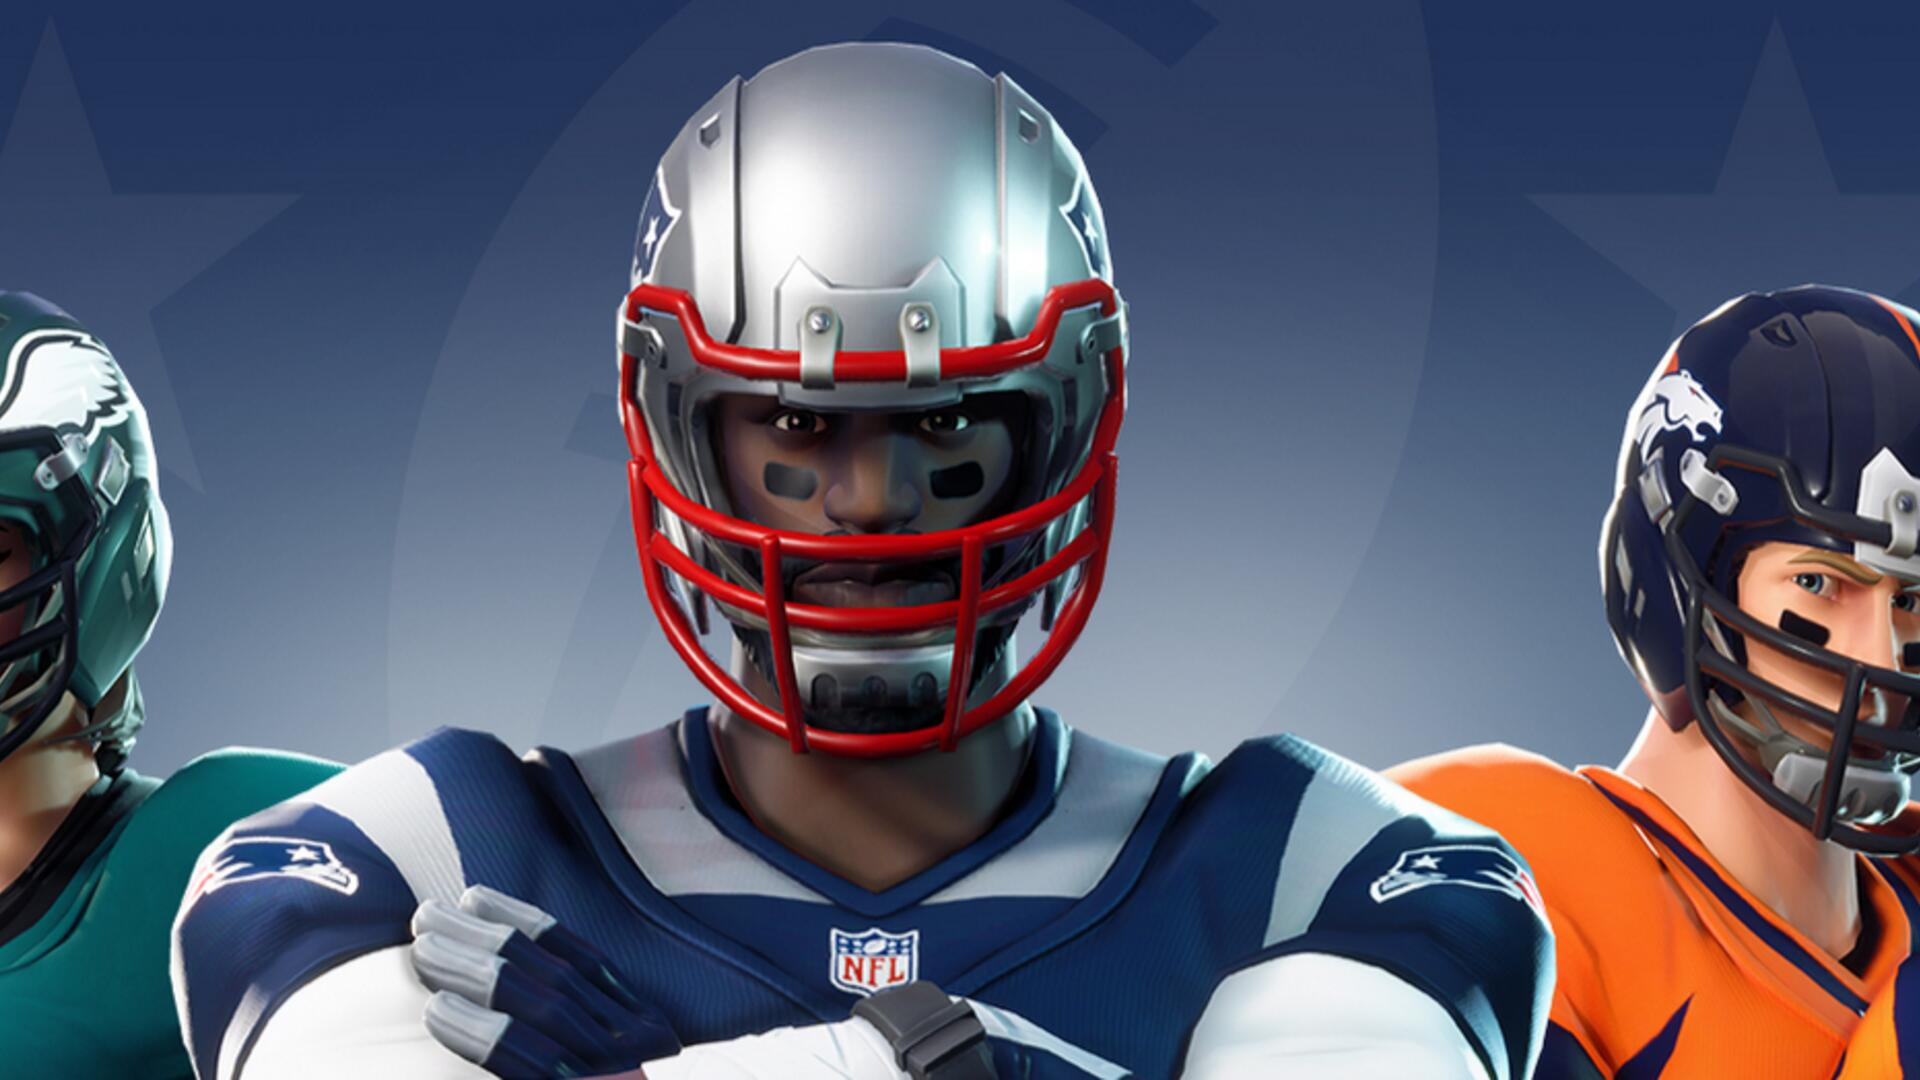 Fortnite S Nfl Skins Brought Out The Worst In Players Usgamer